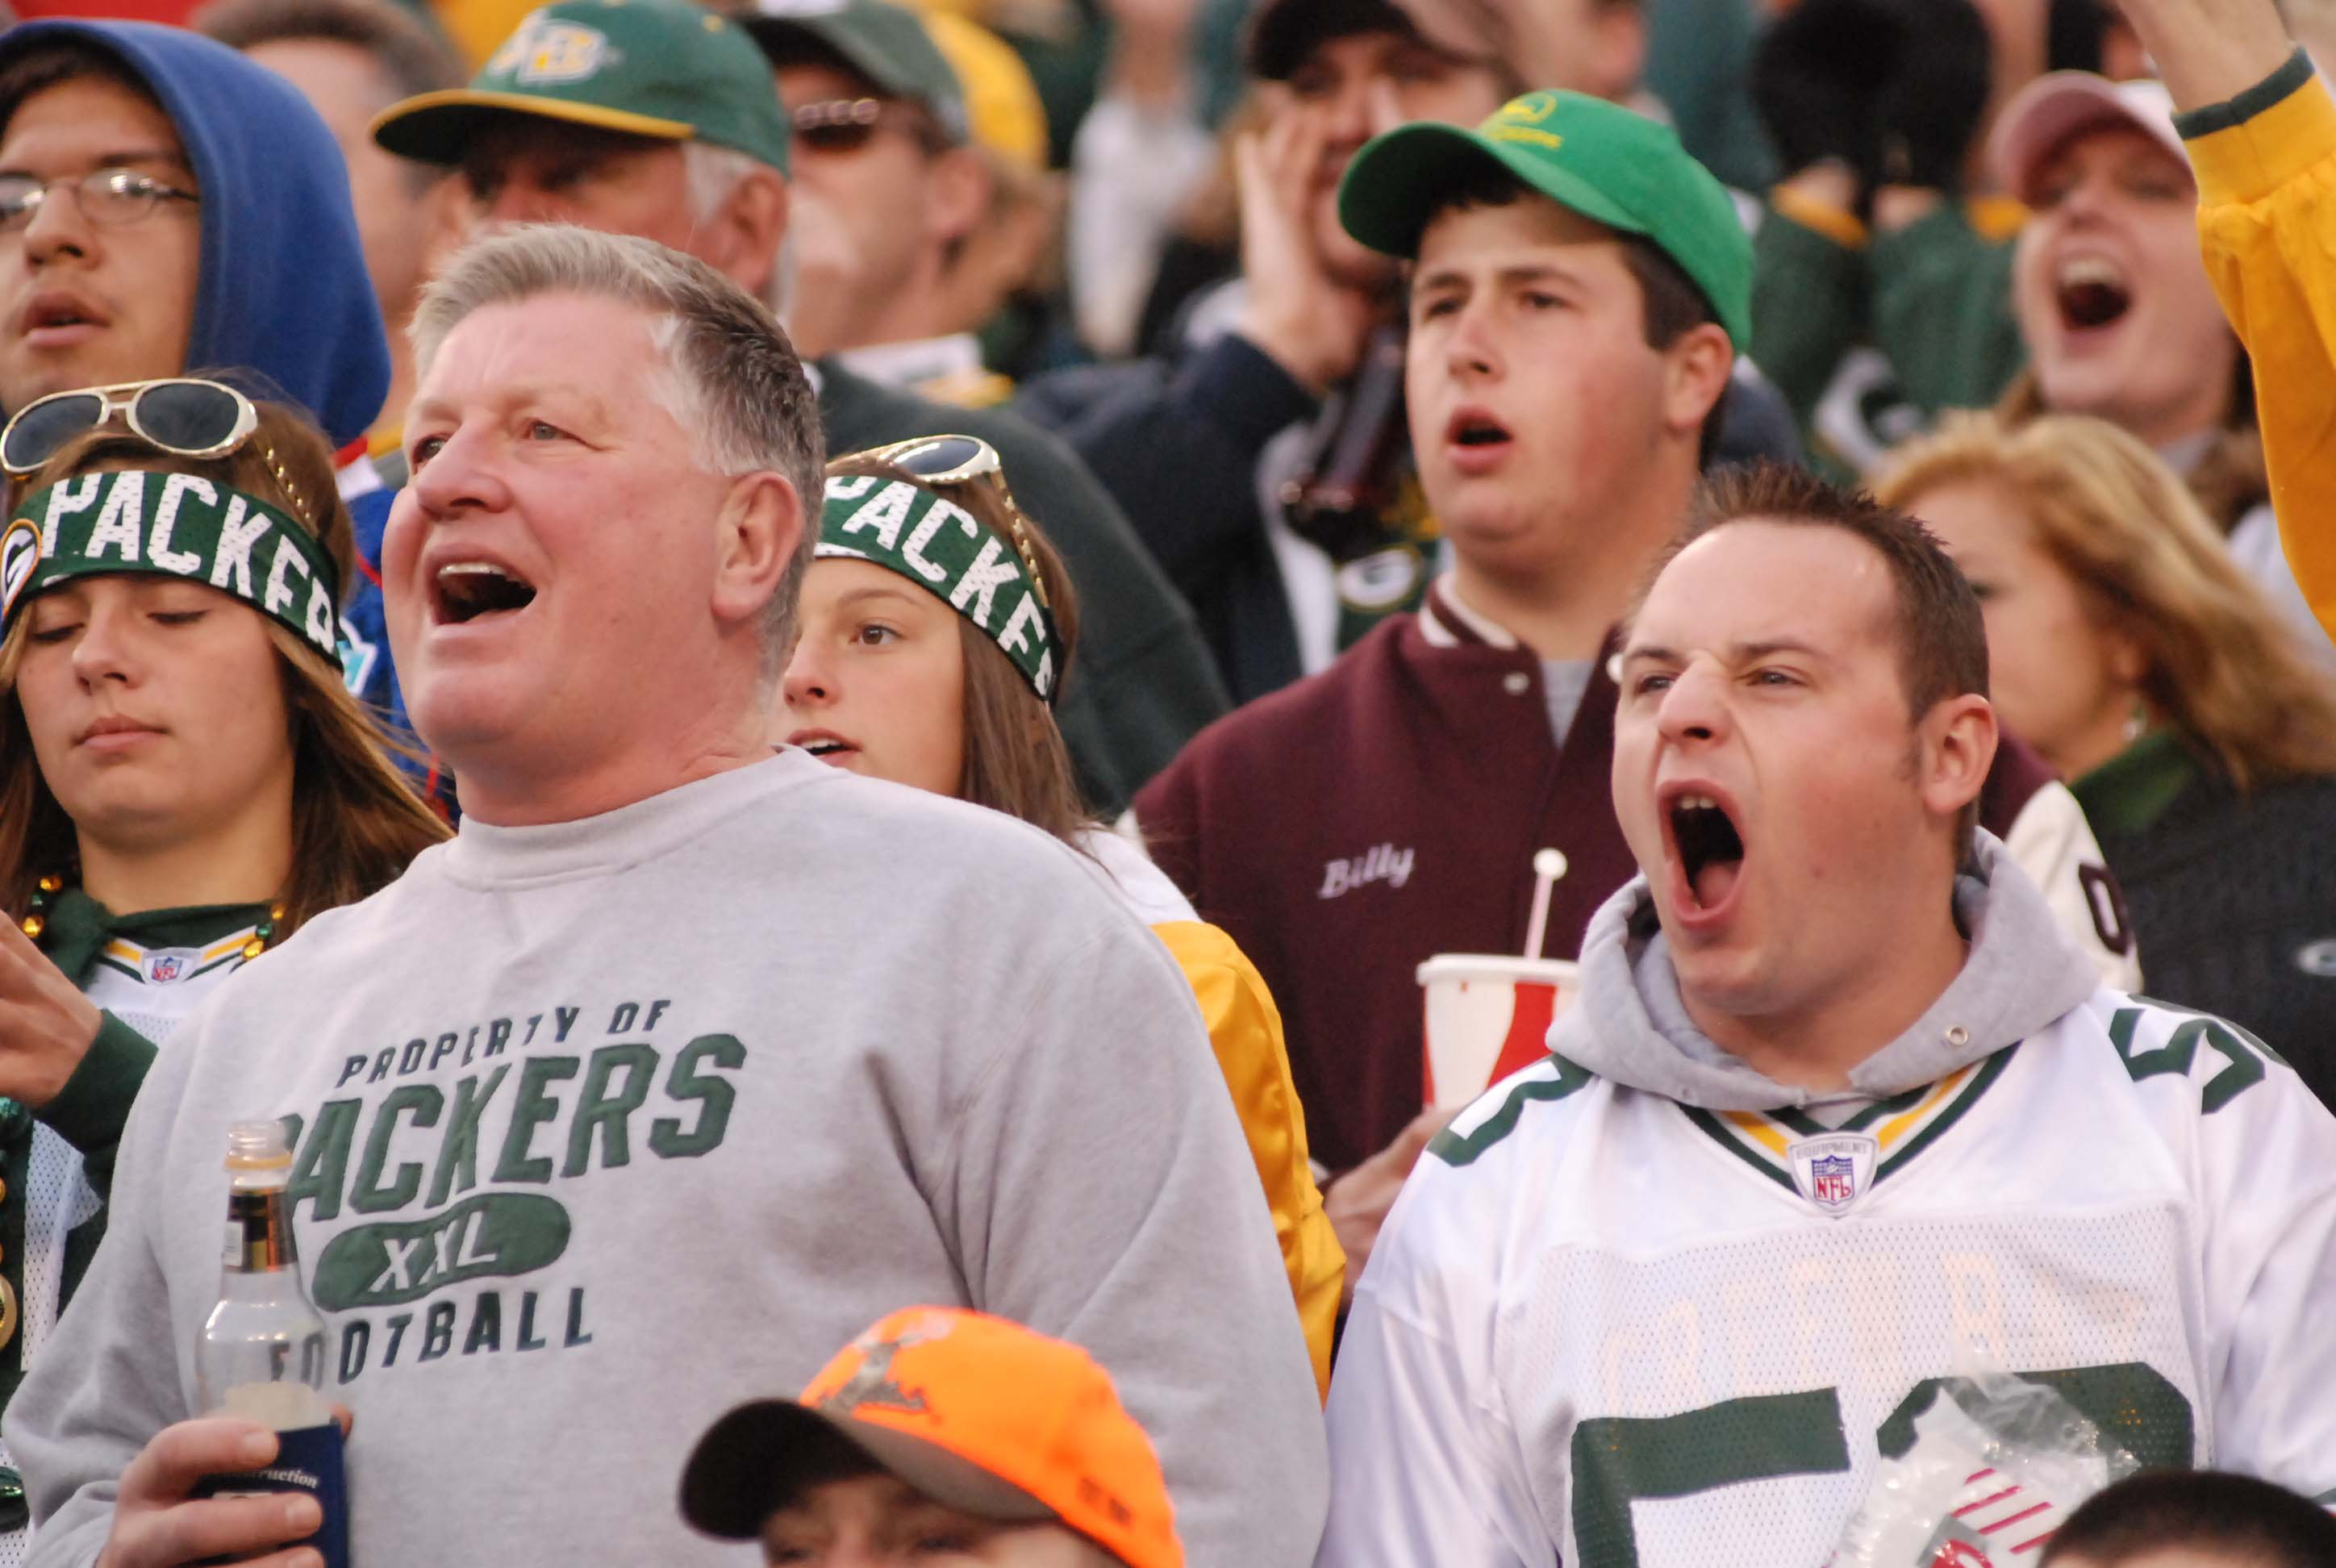 Green Bay Packers fans are hoping for plenty to cheer about in the coming weeks. Raymond T. Rivard photograph